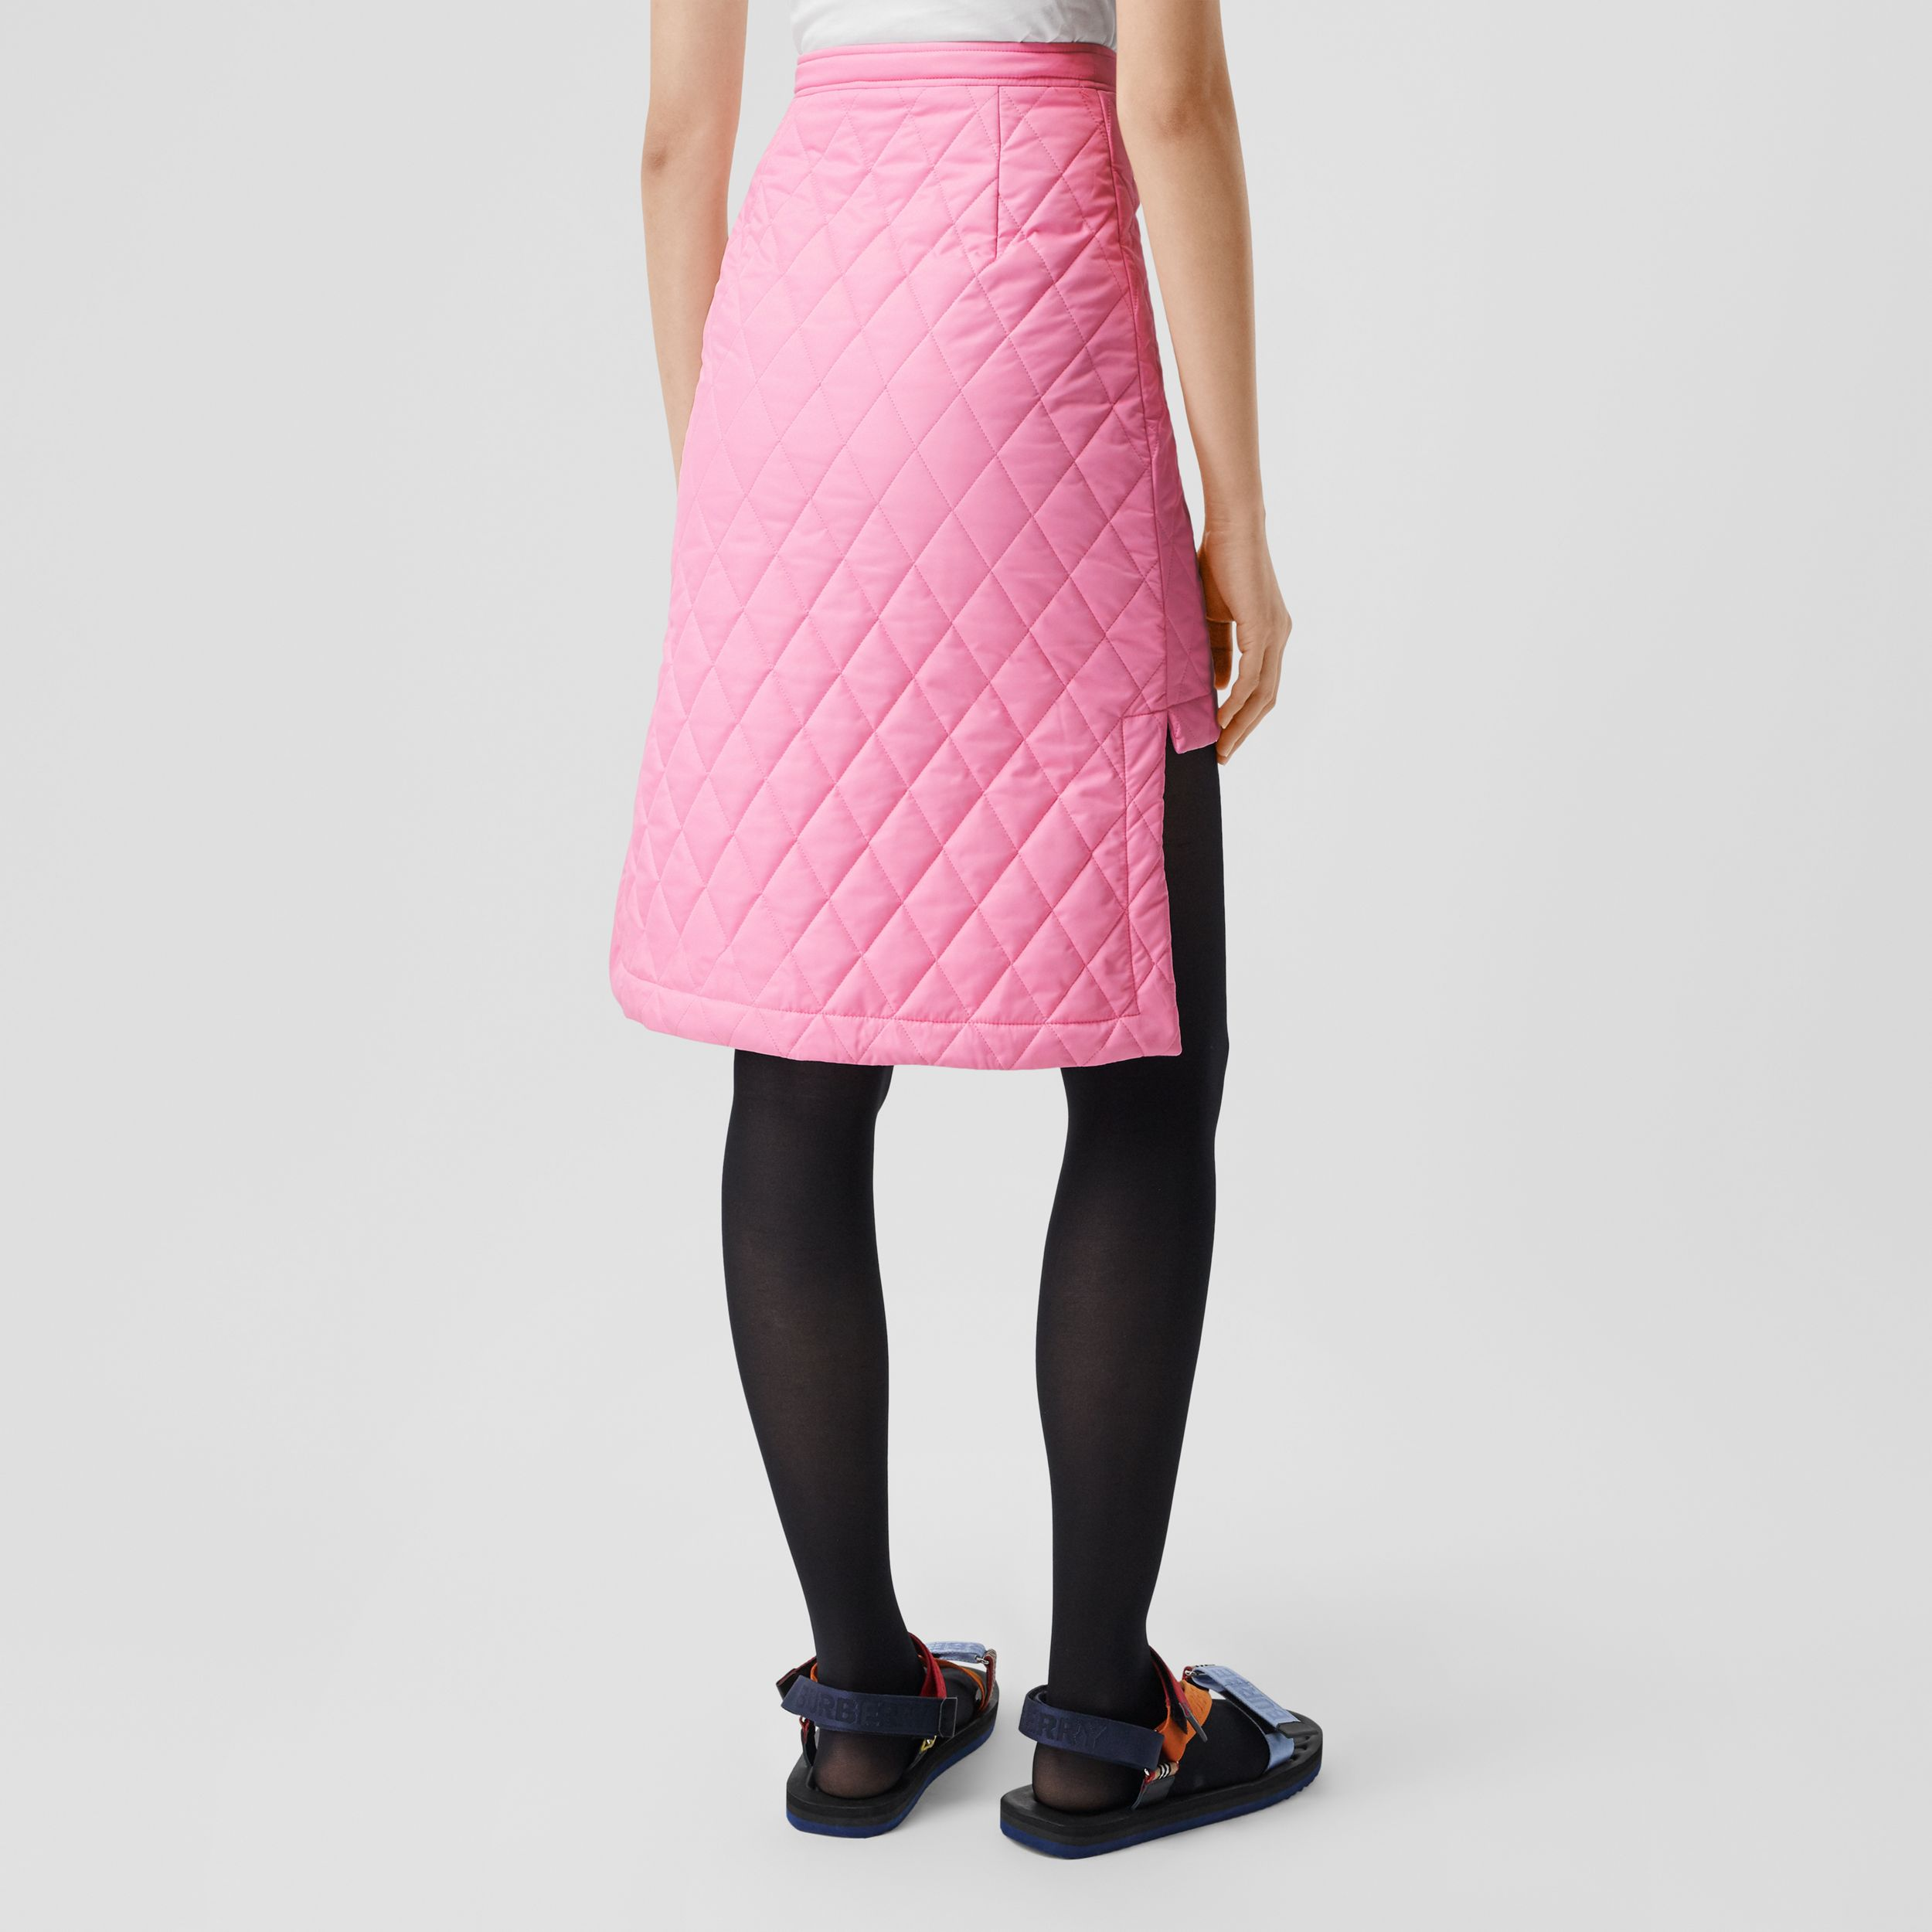 Asymmetric Diamond Quilted Skirt in Bubblegum Pink - Women | Burberry - 3